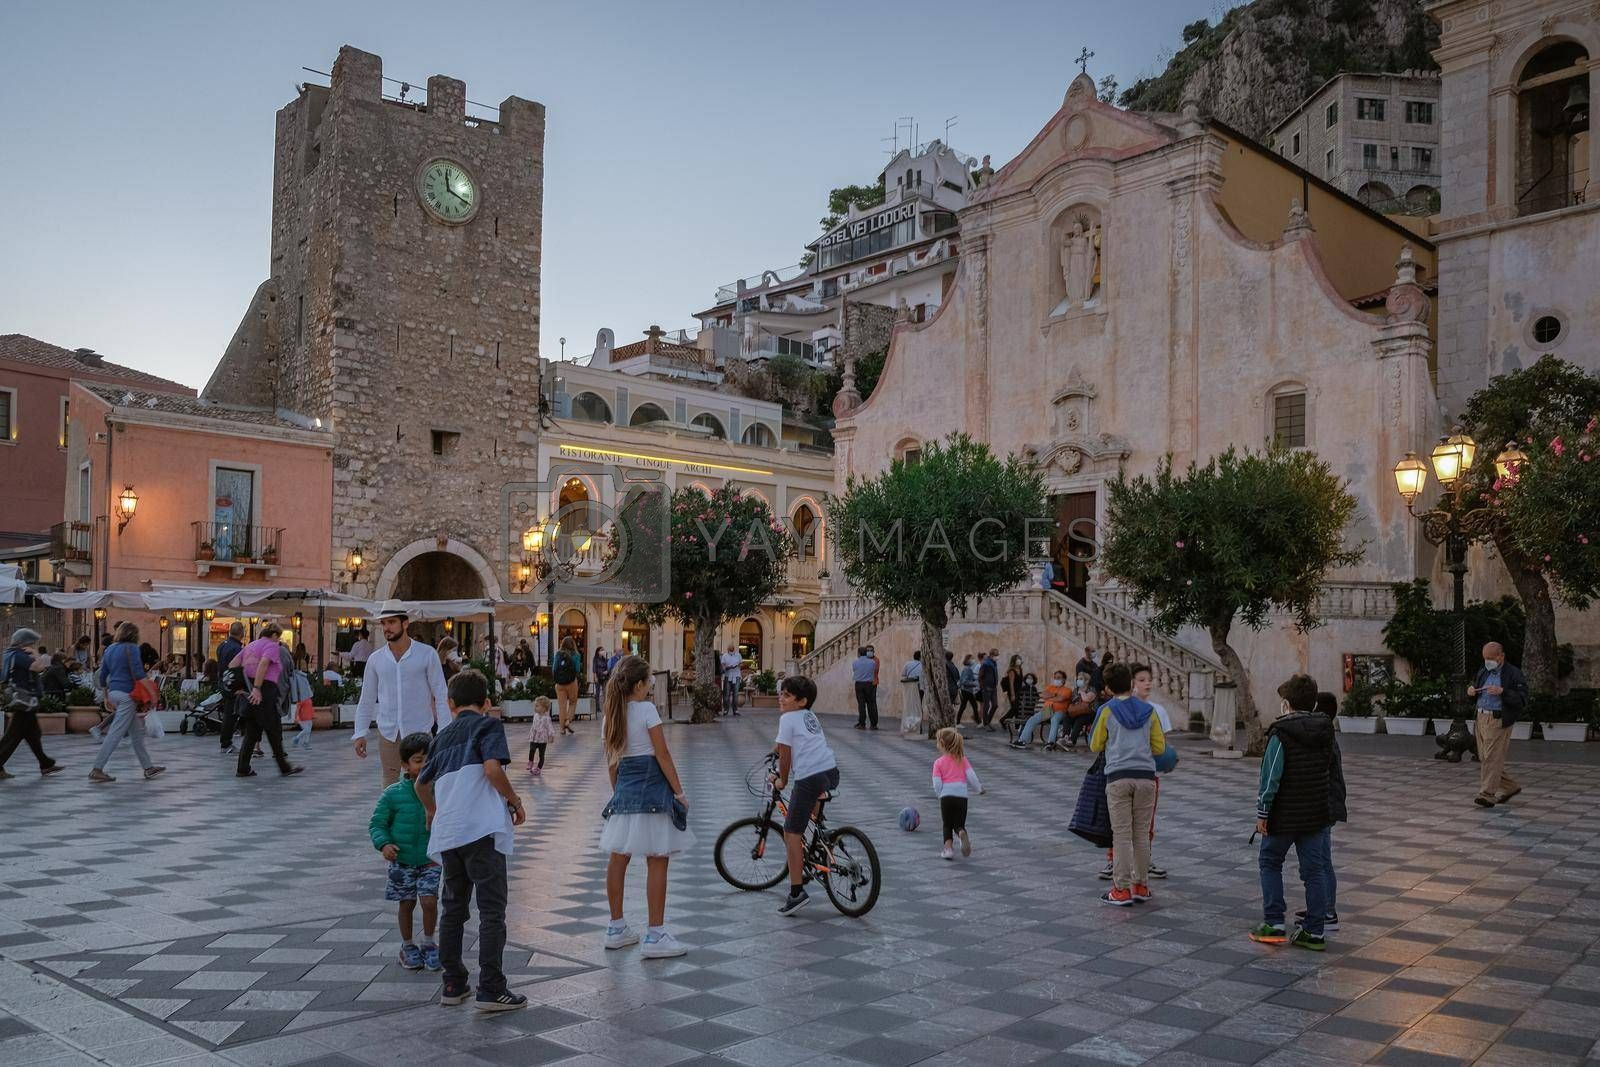 Taormina Sicily Italy October 2020, people on the streets using face mask during the pandemic Corona Covid 19 virus outbreak.